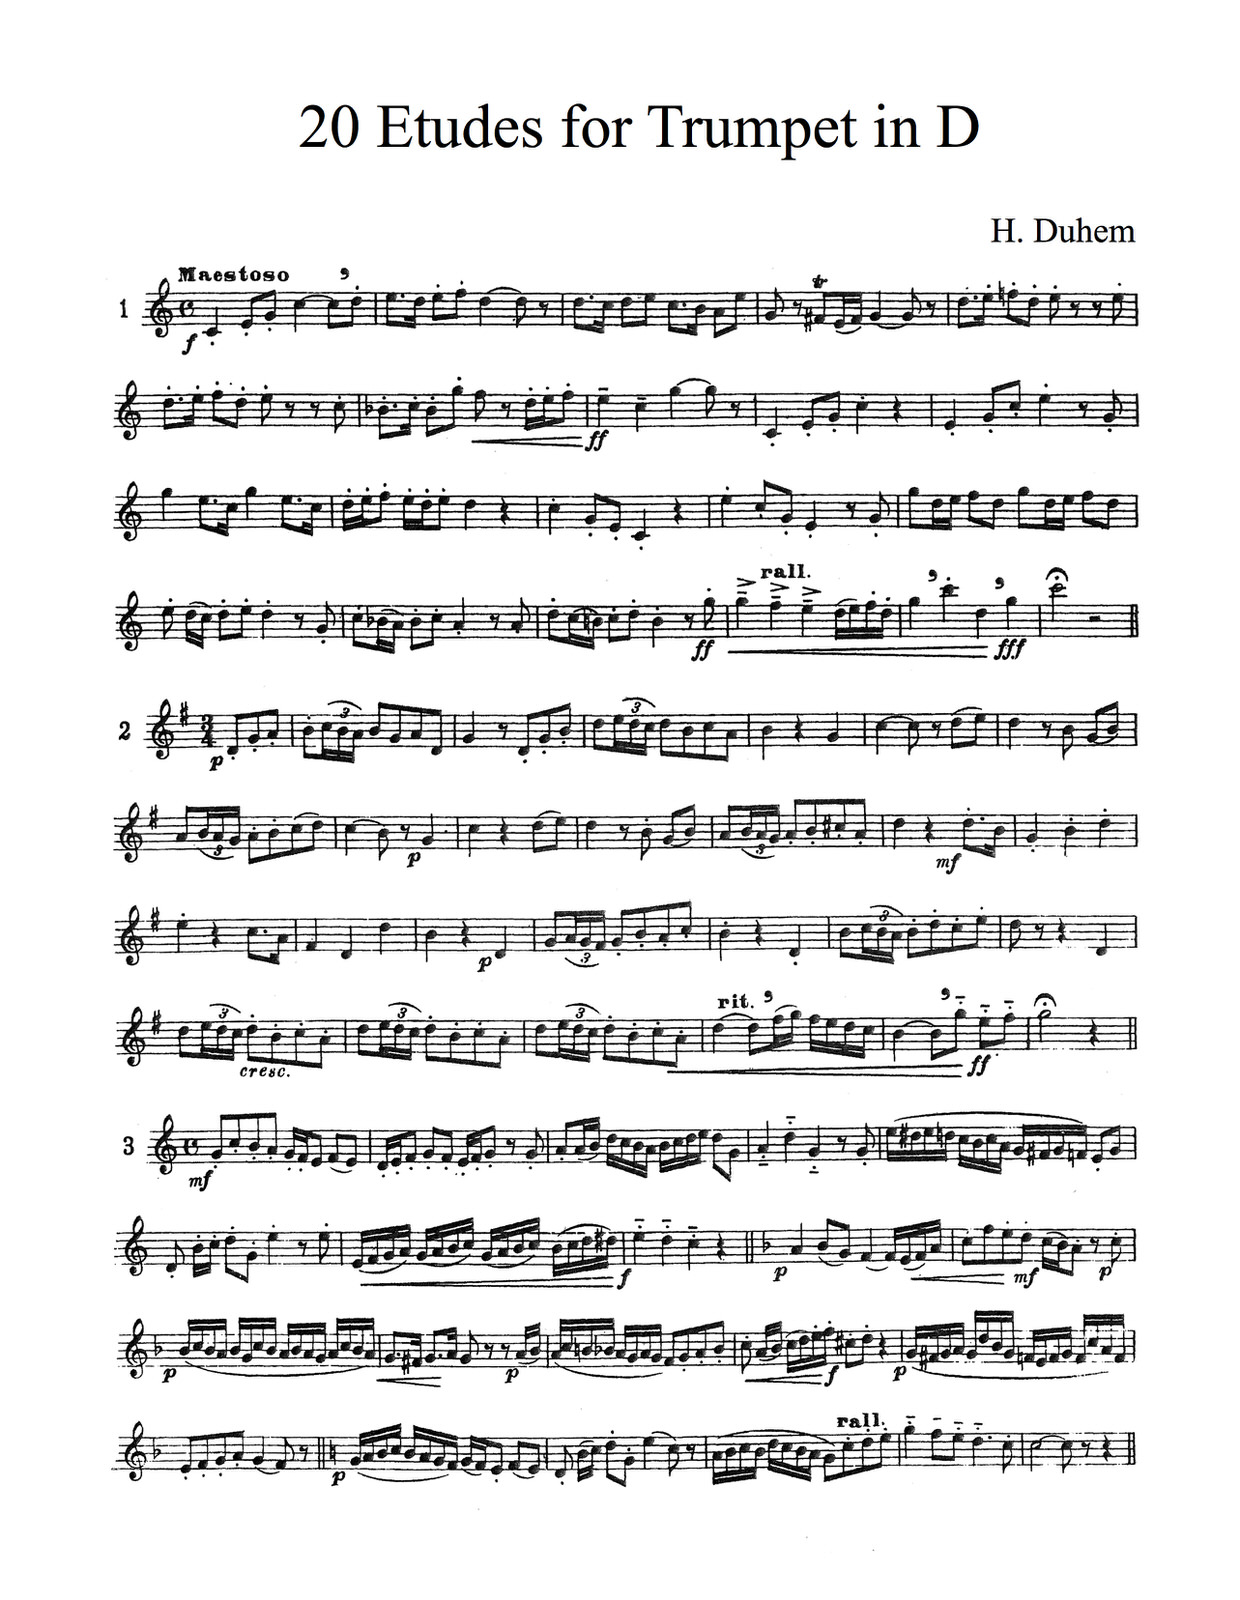 Duhem, 20 Etudes for Trumpet in D